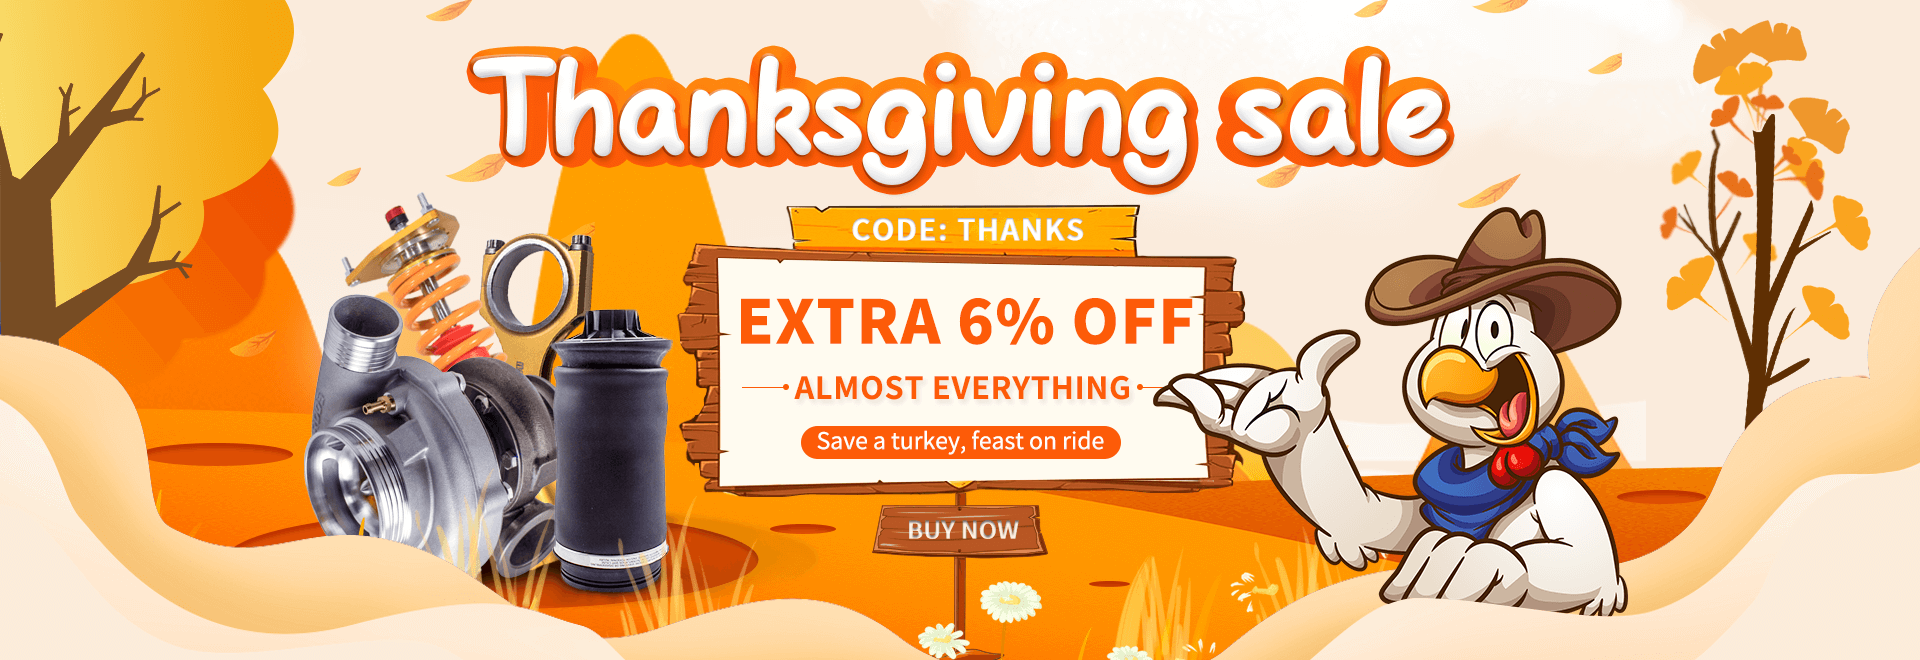 Thanksgiving Sales